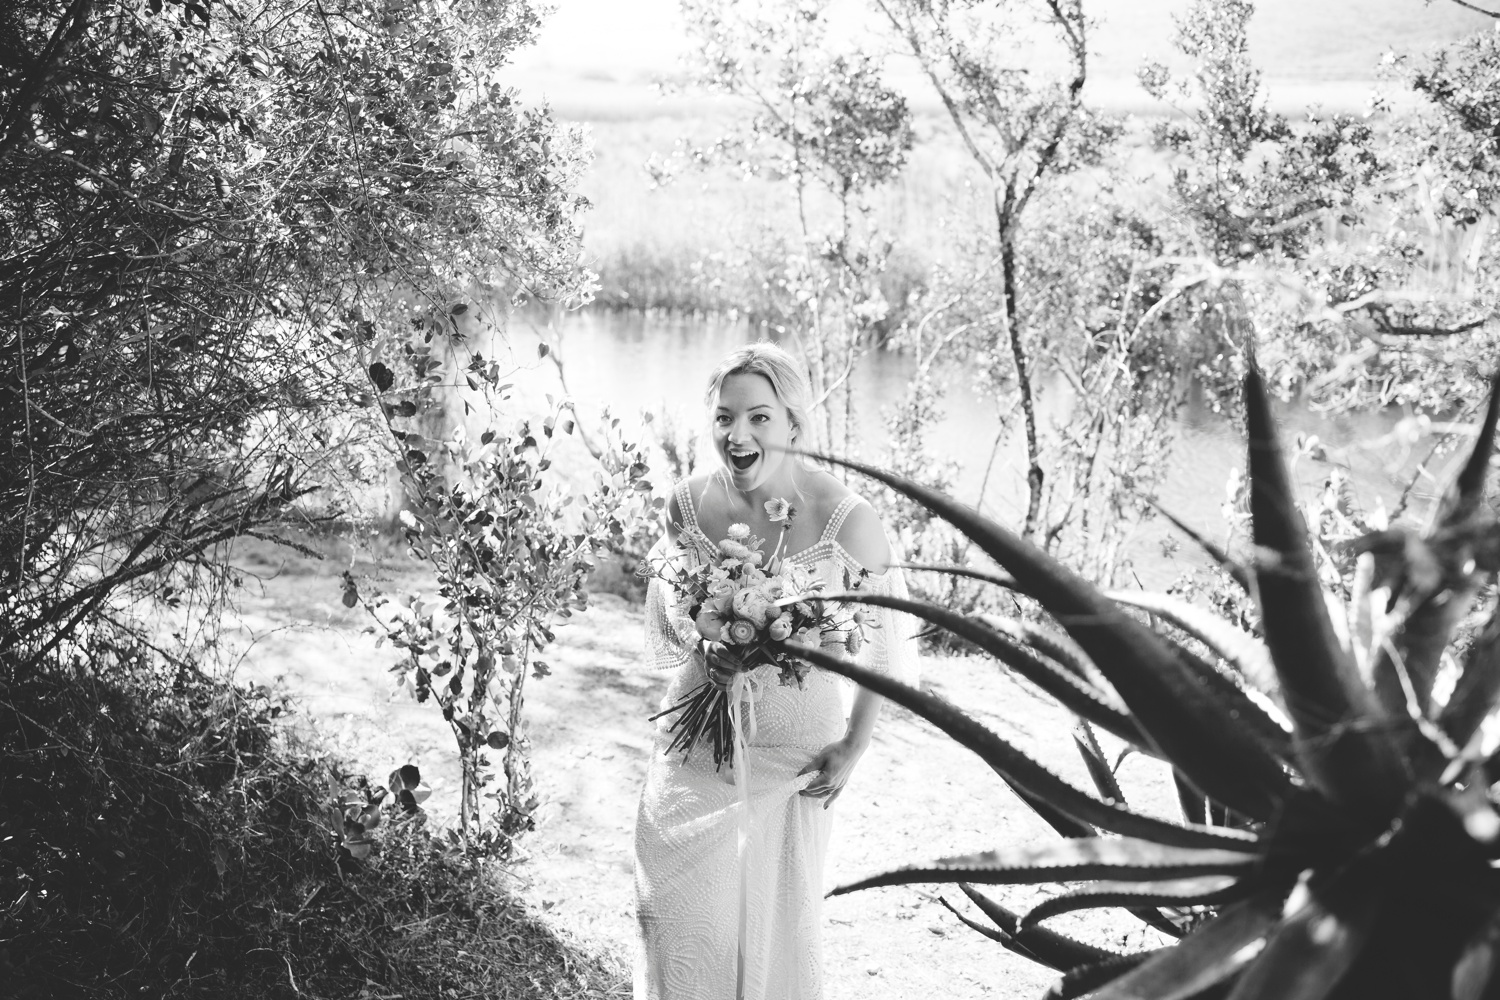 charlie_ray_photography_runaway_romance_elopement_emily_moon_plett_simple_boho_wedding_south_africa_bohemium_0042.jpg